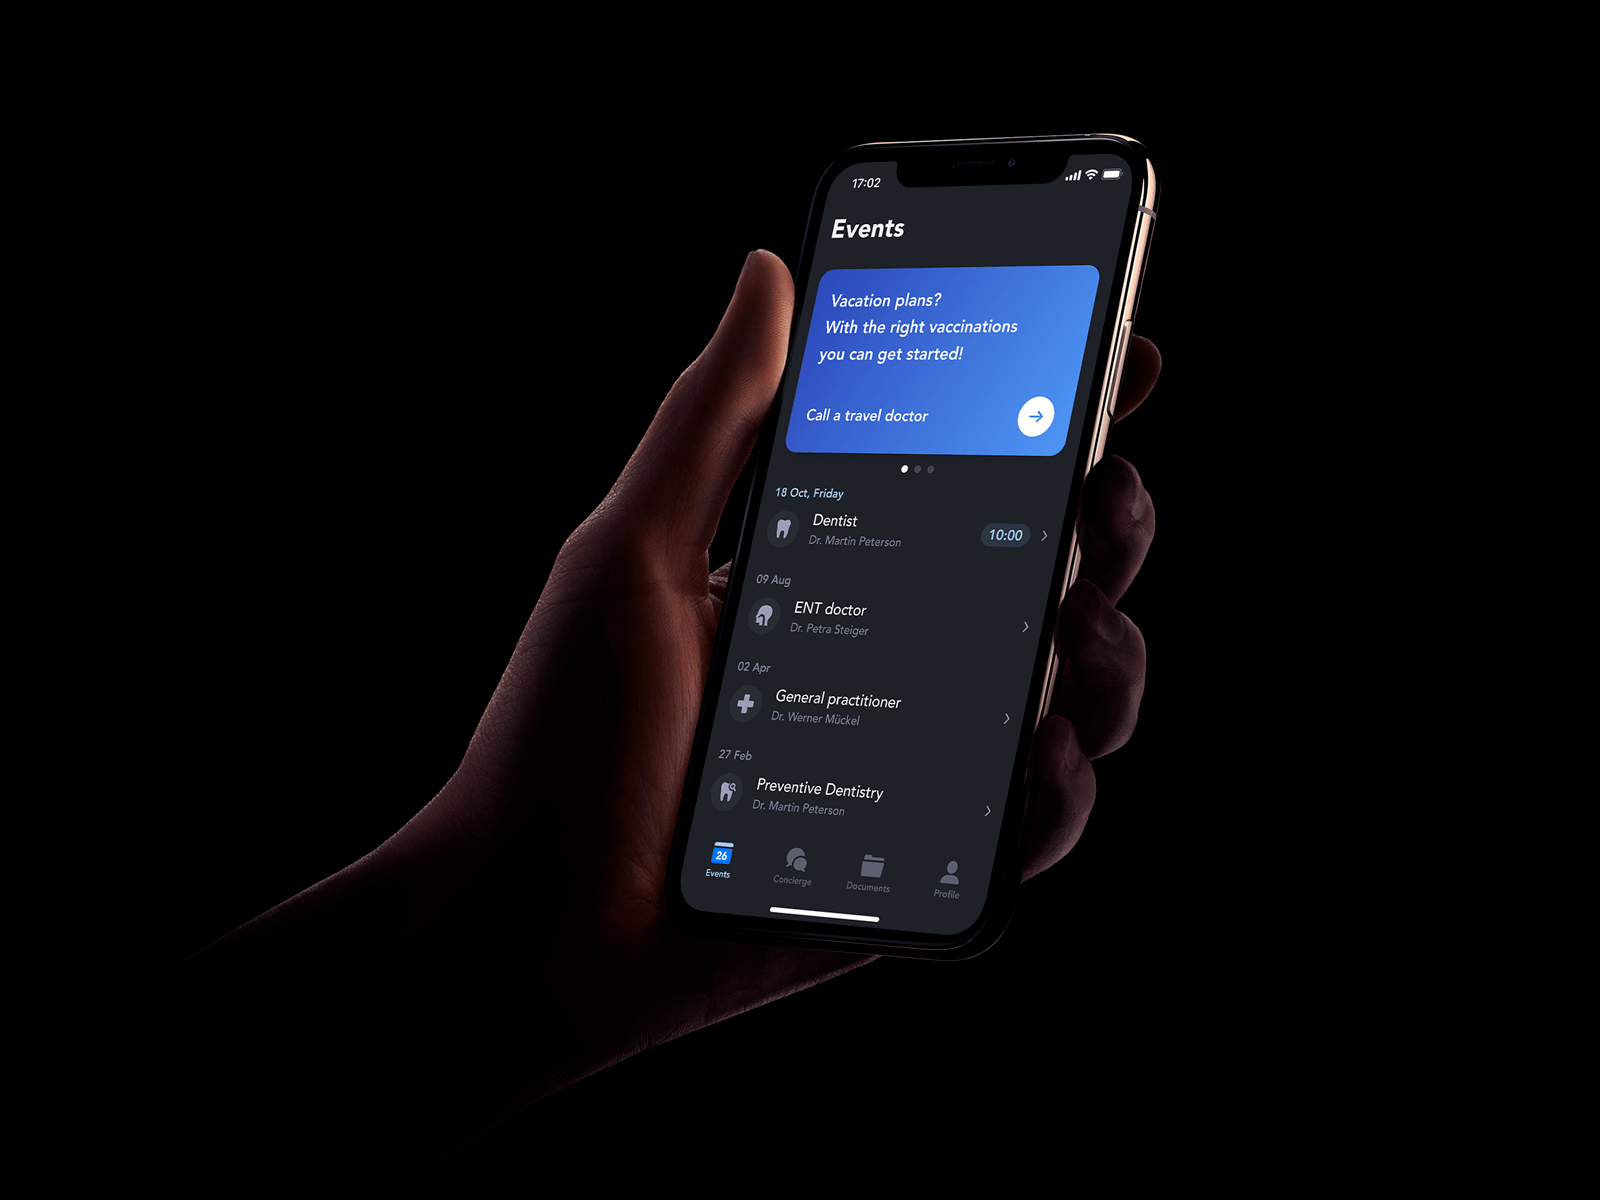 Dark mode exploration 🌑 by Andreas Storm